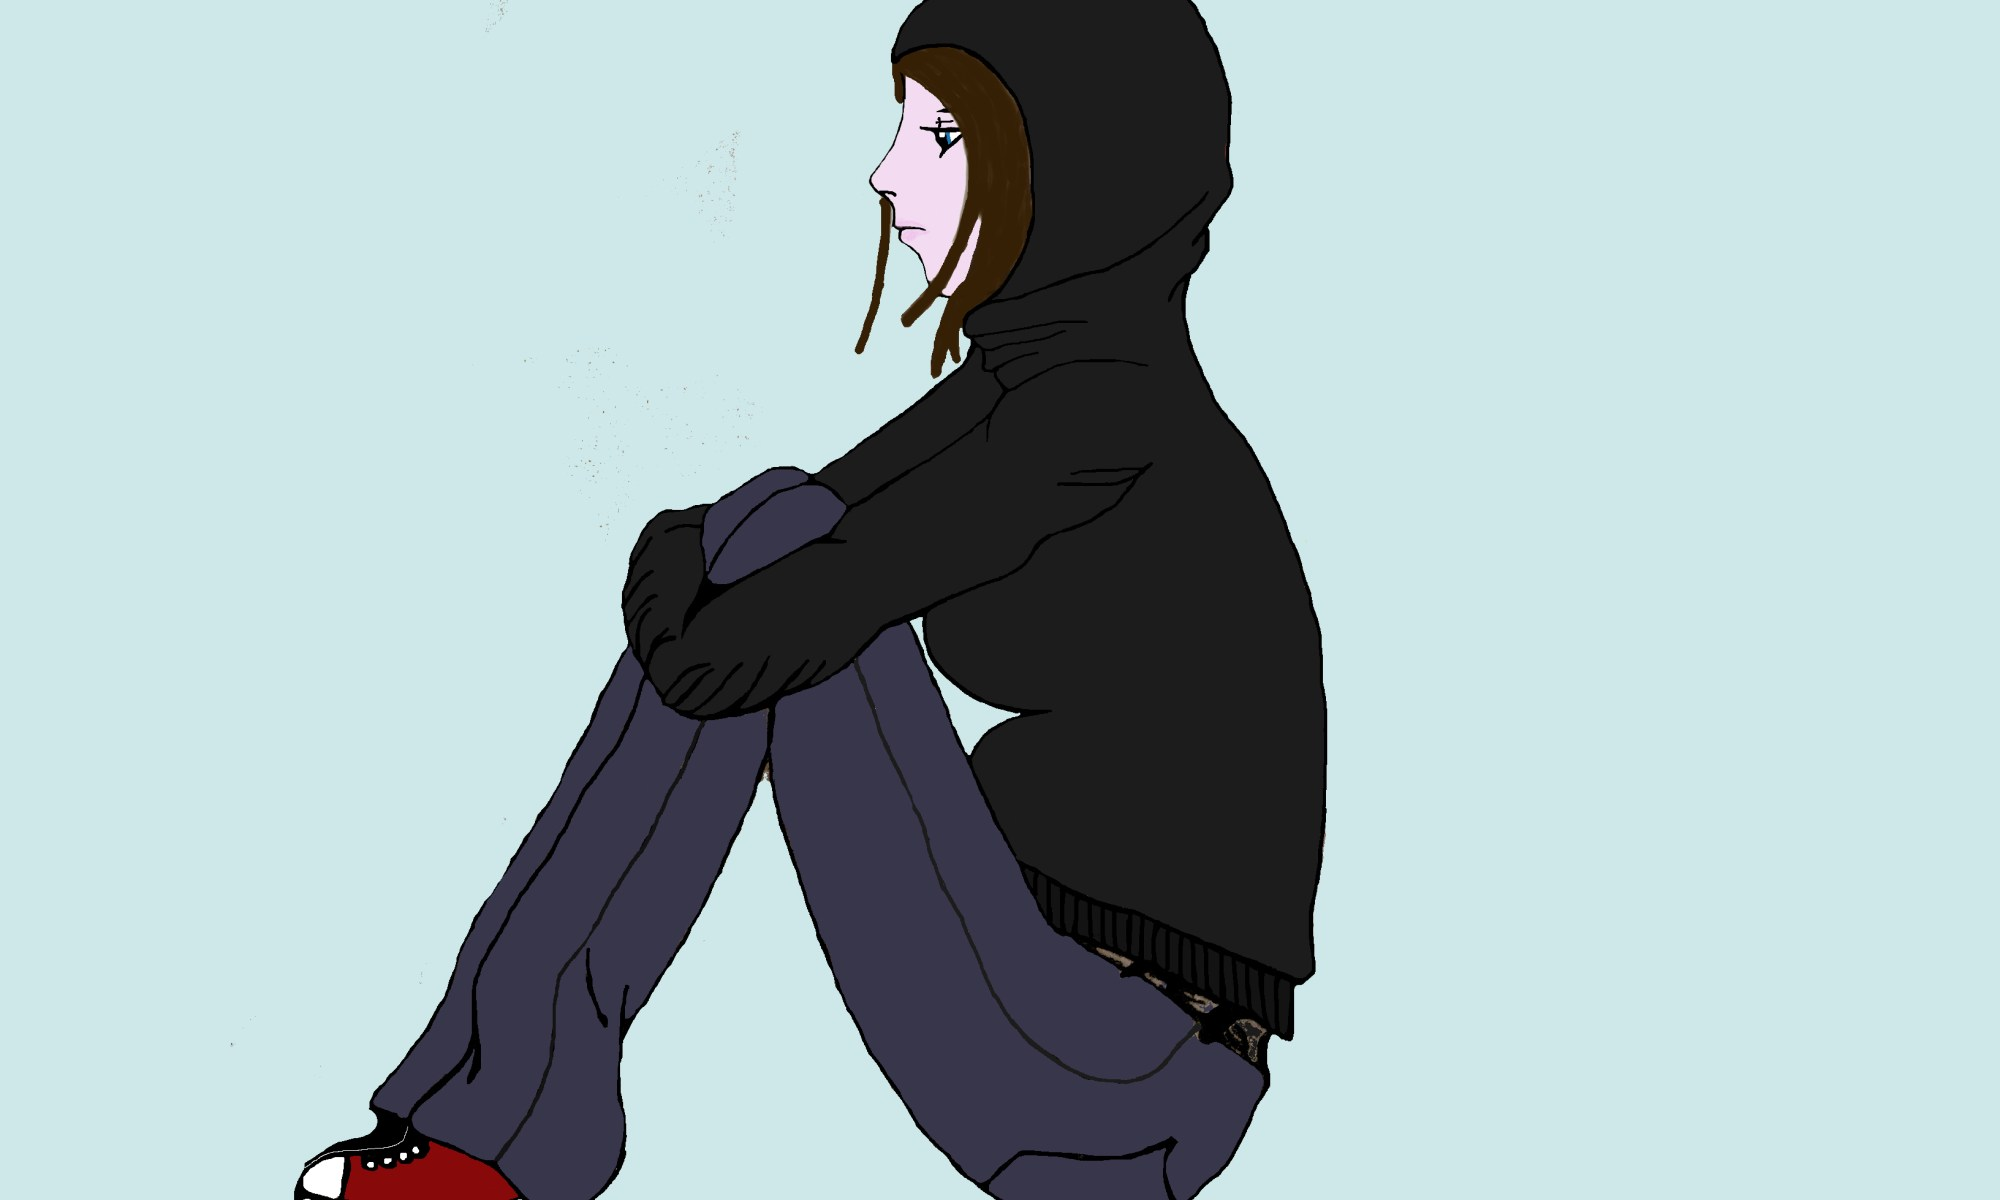 Sad Girl, woman, painting, hoodie, drawing, art